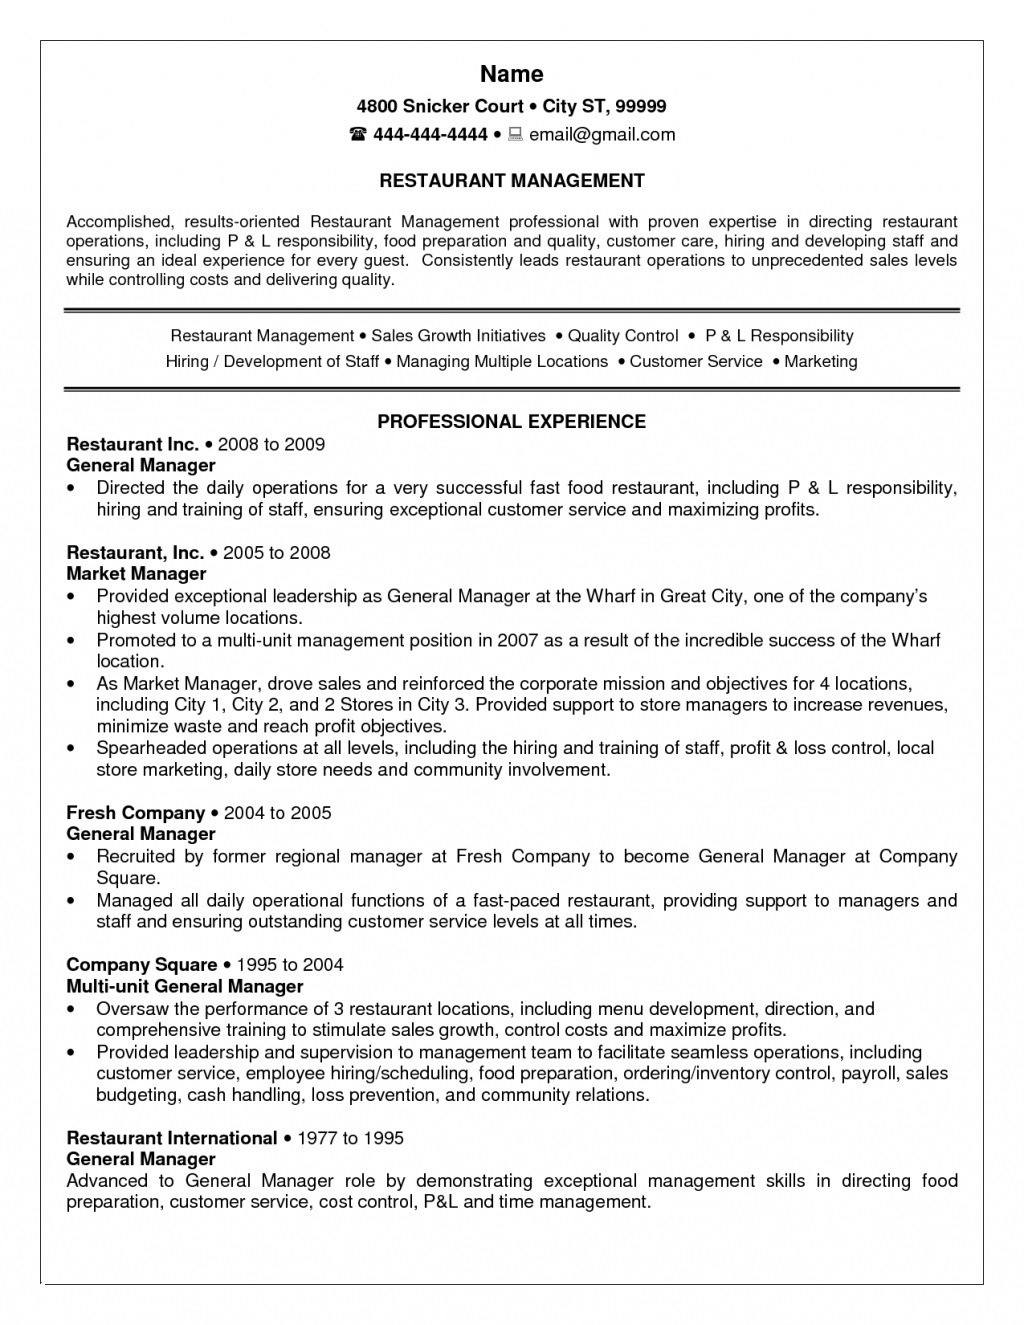 Bank Teller Responsibilities for Resume - 22 Elegant General Manager Resume